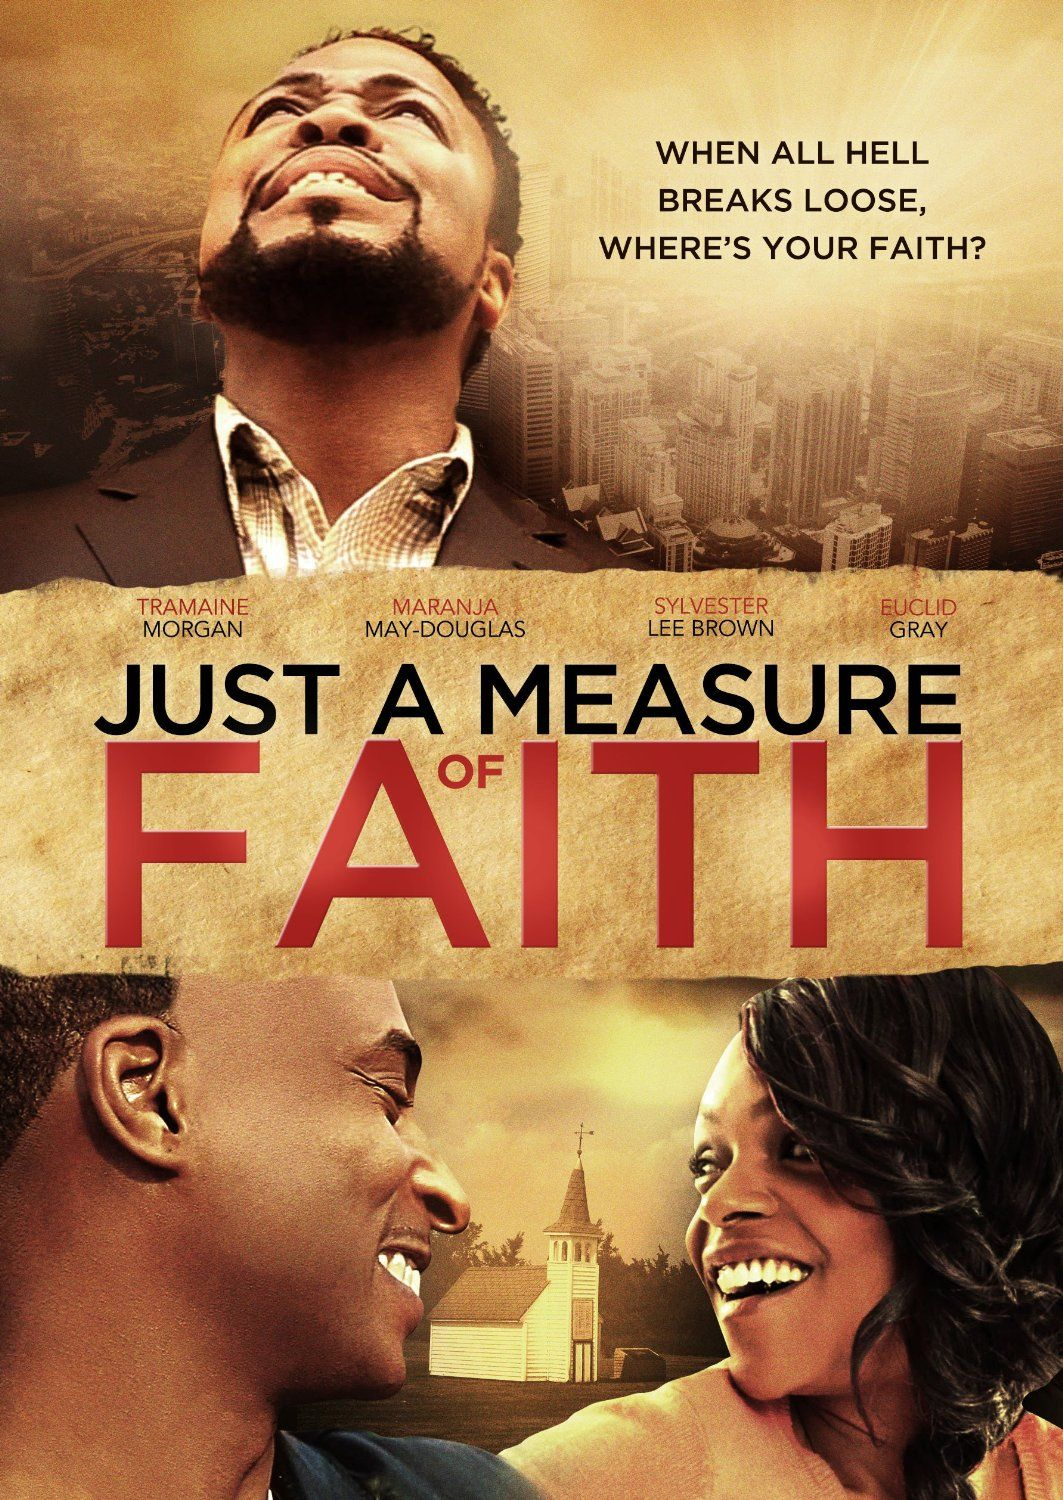 Just a Measure of Faith Christian Movie/Film CFDb